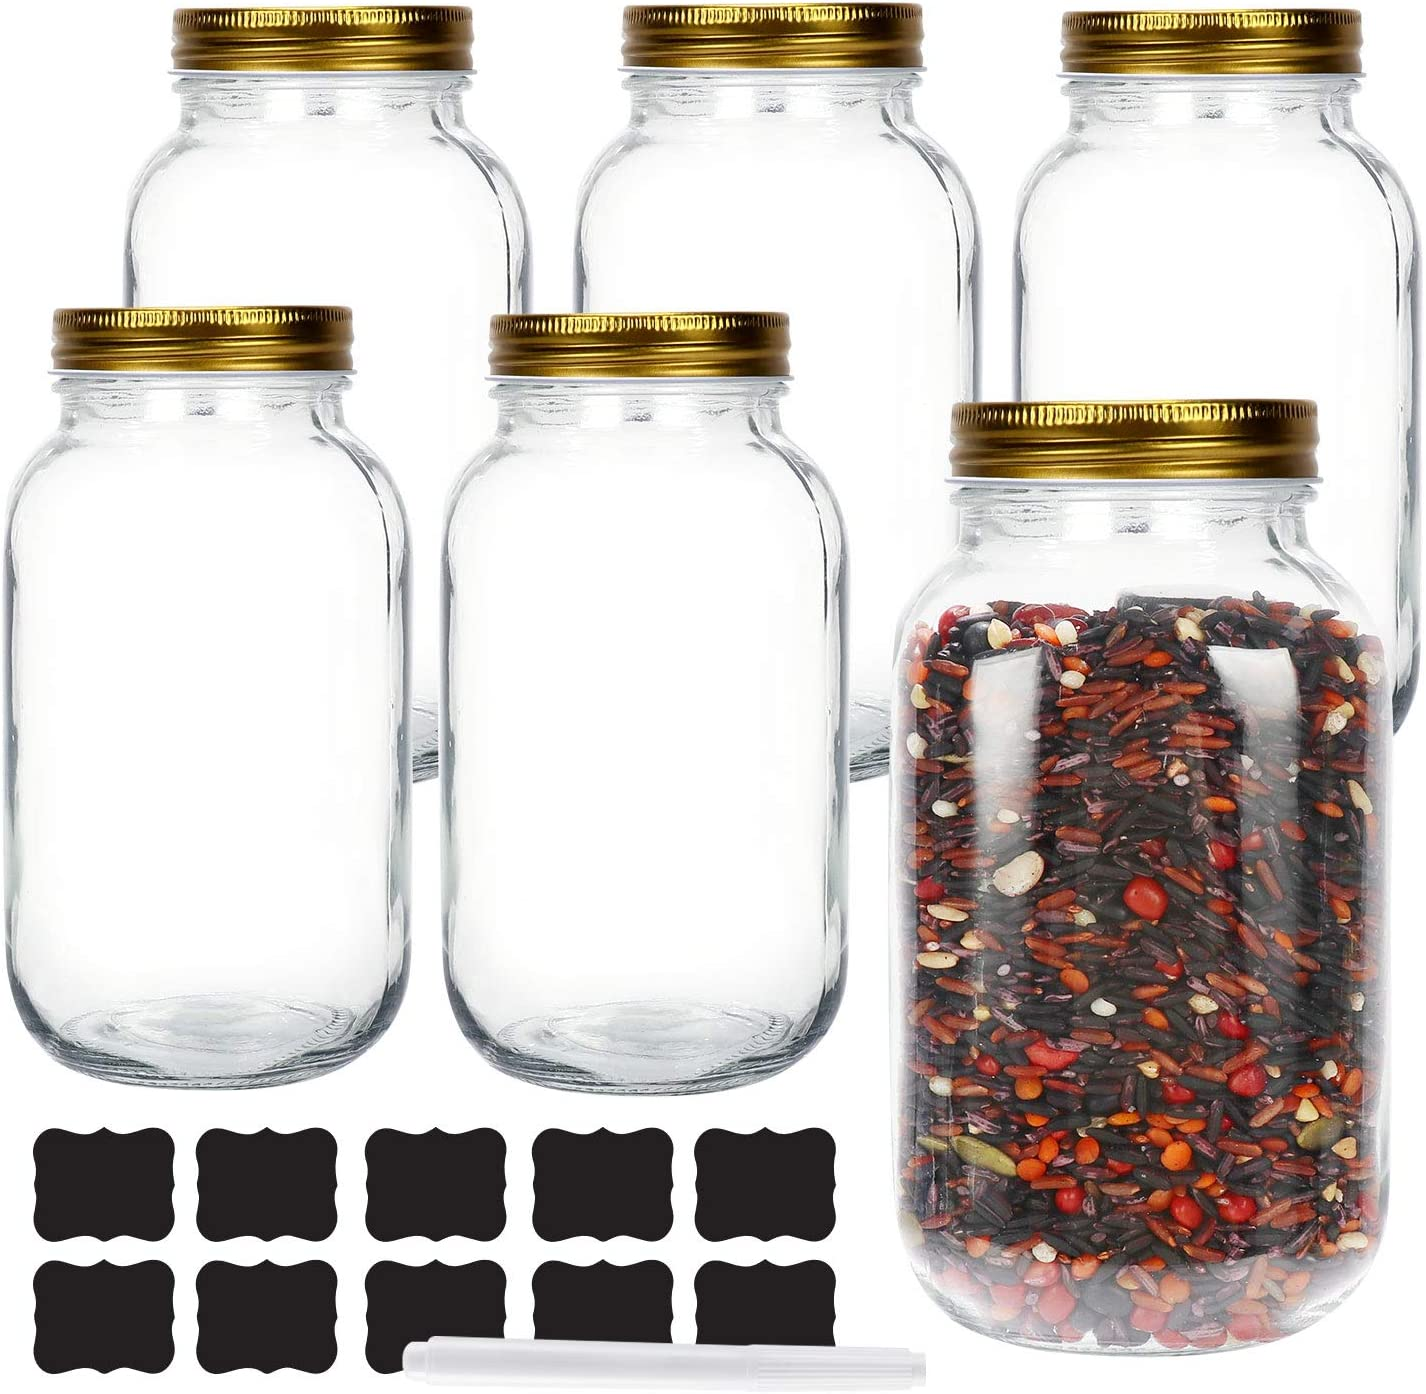 6 Pack 1 Liter 34 oz Glass Mason jars With Regular Mouth Lids, Perfect Containers for Jam, Honey, Candies,Wedding Favors, Decorations, Baby Foods. Included 1 Pens and 10 Labels.